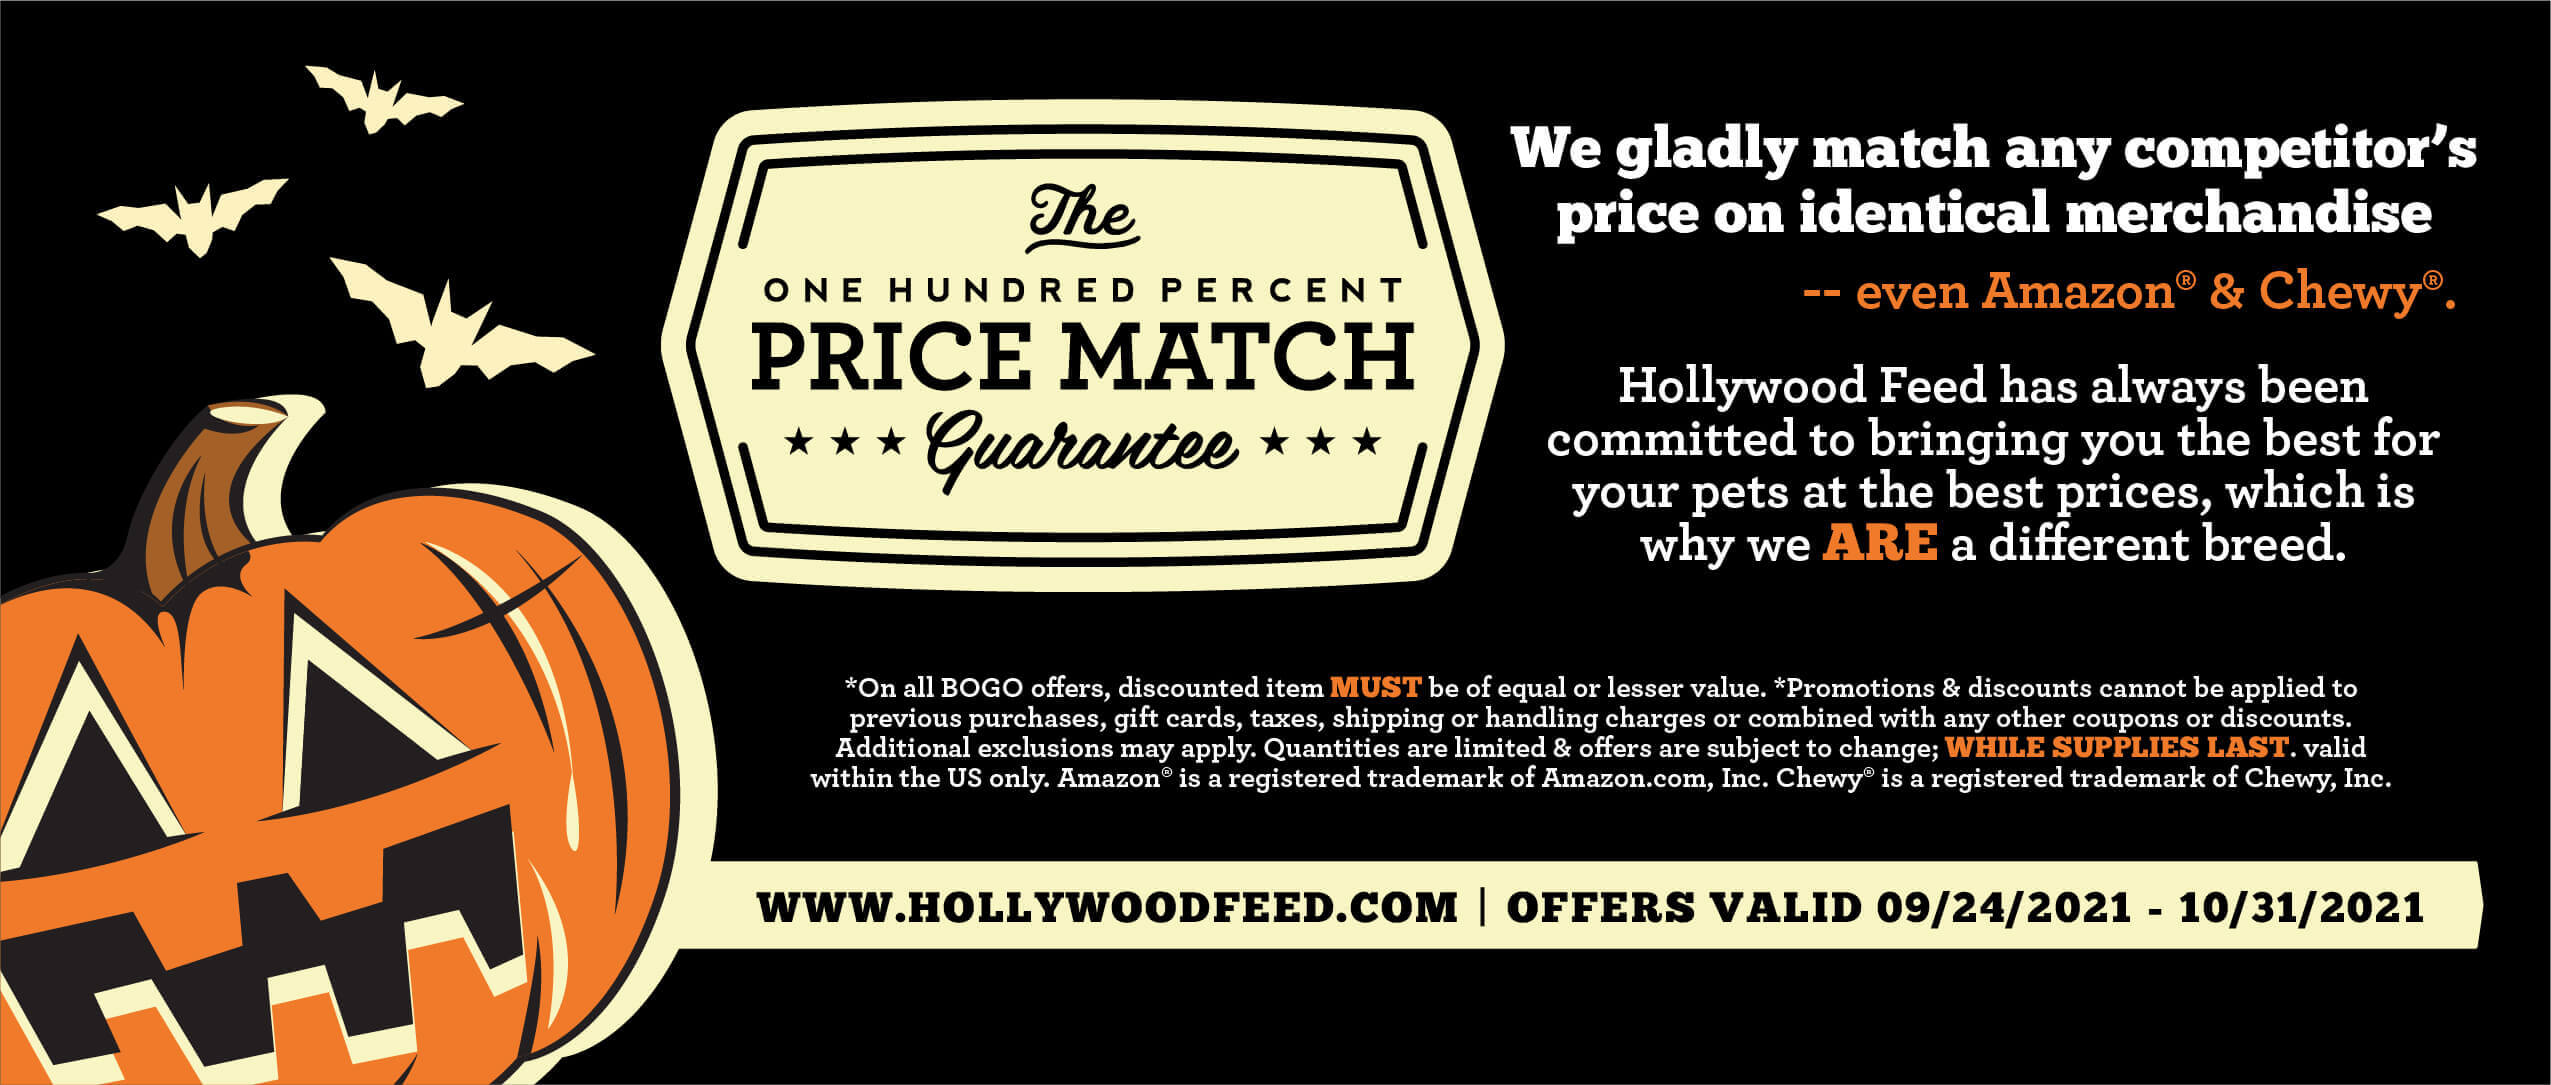 Footer - Price Match Guarantee - We gladly match any competitor's price on identical merchandise.